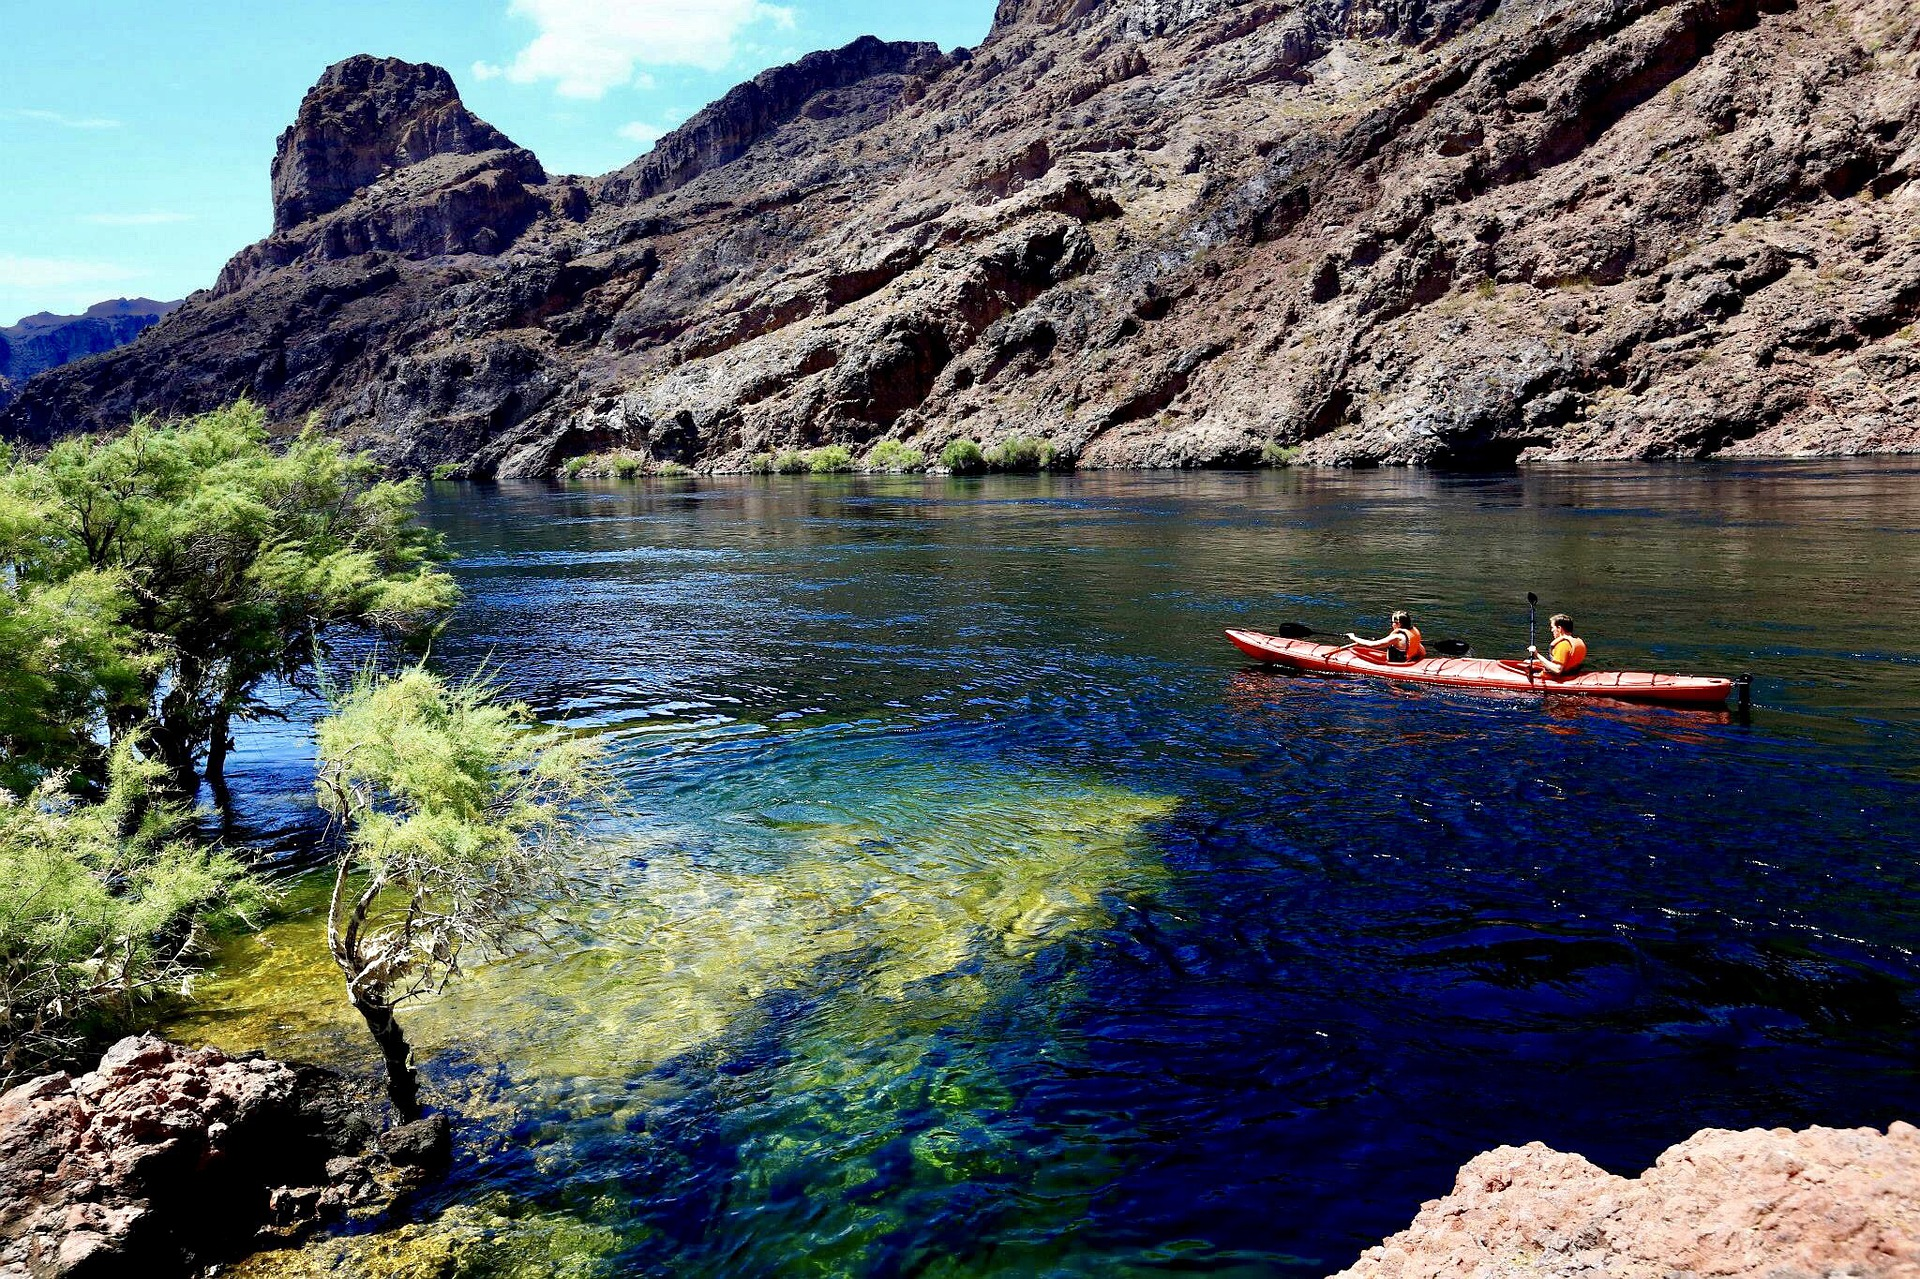 Kayaking on a river with rugged rocky banks.